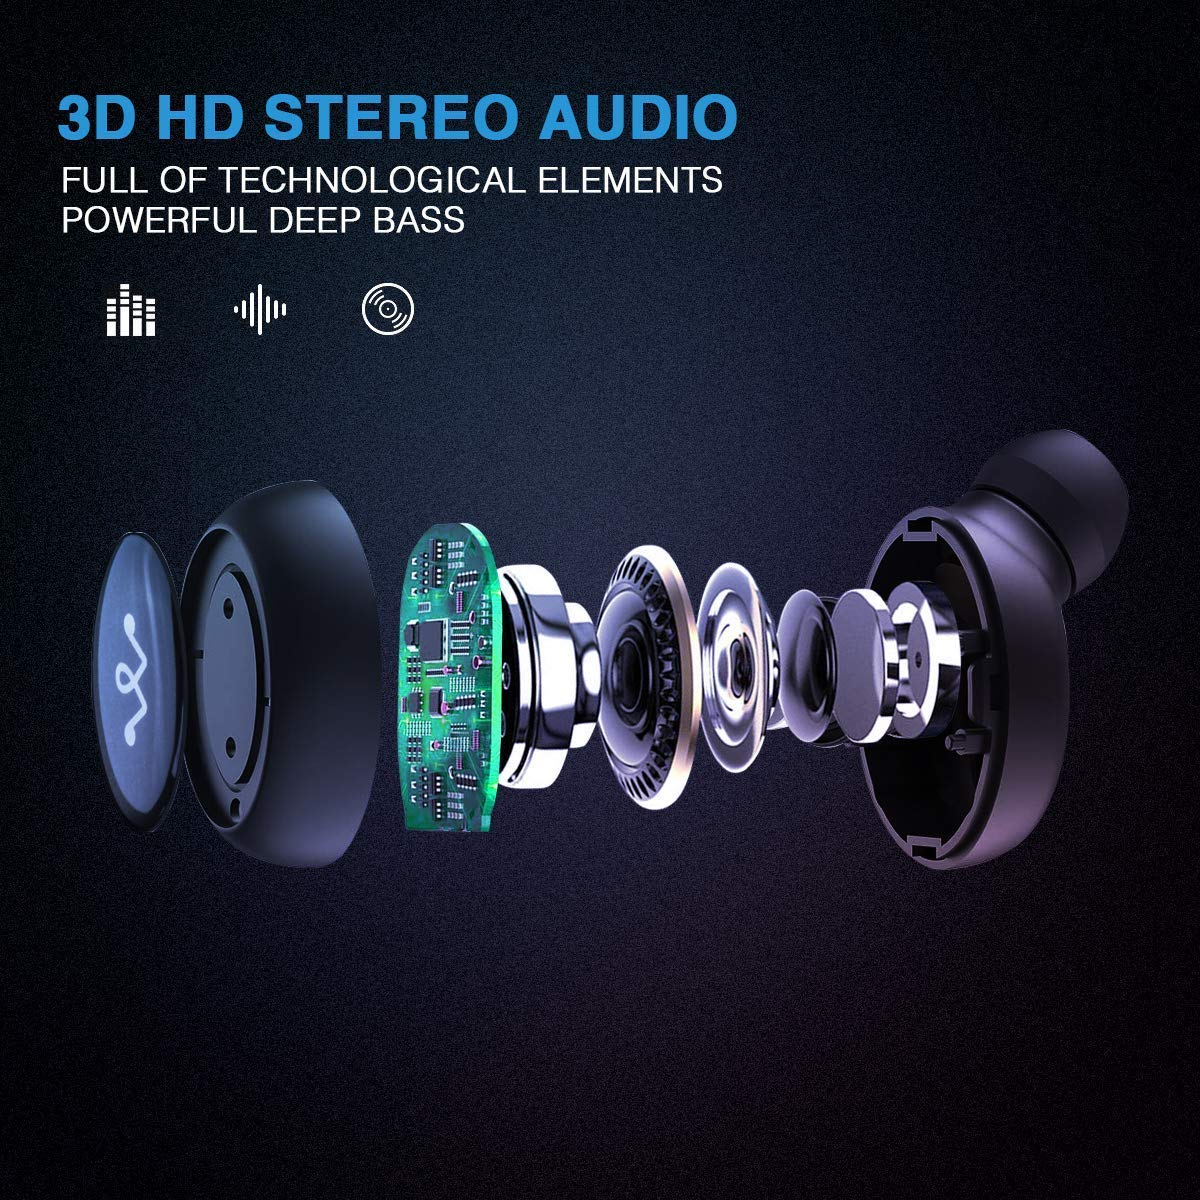 Levin True Wireless Earbuds Bluetooth 5.0 Headphones – Earbuds Earphones, Deep Bass HiFi 3D Stereo Sound with 16H Playtime, Physical Noise Reduction, Portable Charging Case and Built-in Mic